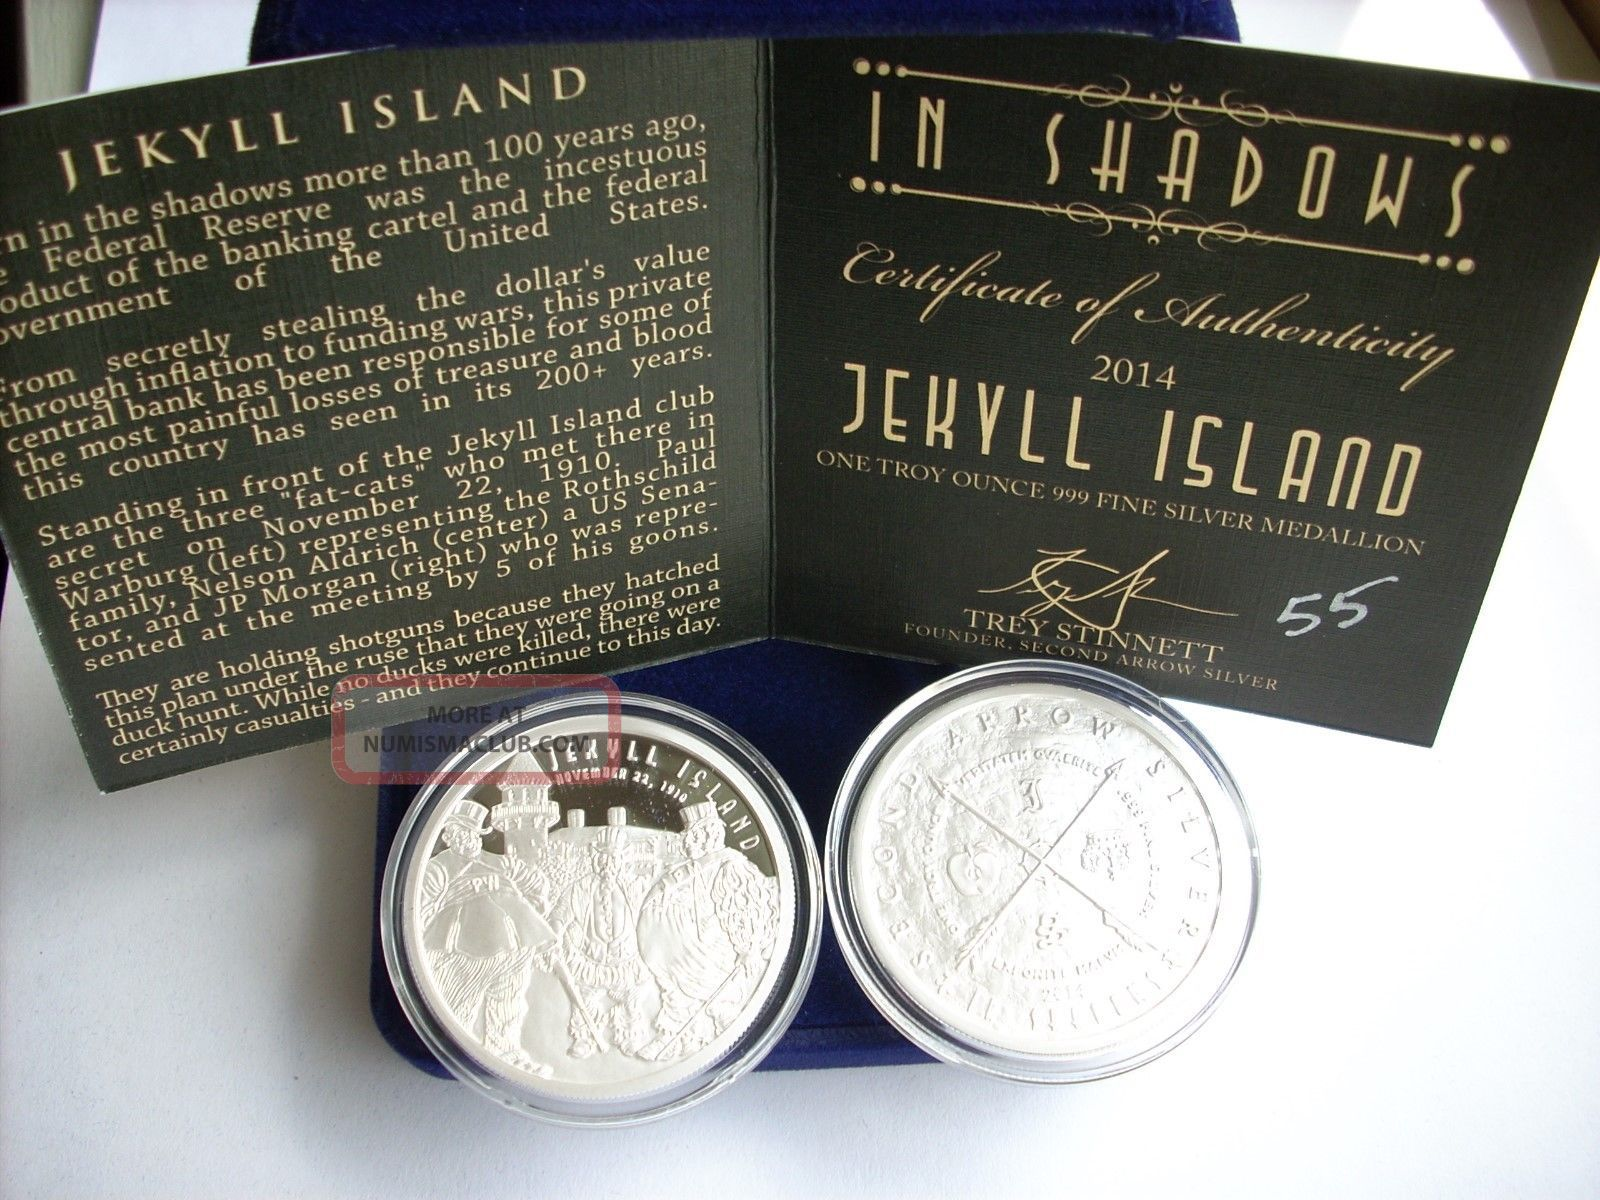 1 Oz Silver Coin Proof Jekyll Island Silver Second Arrow